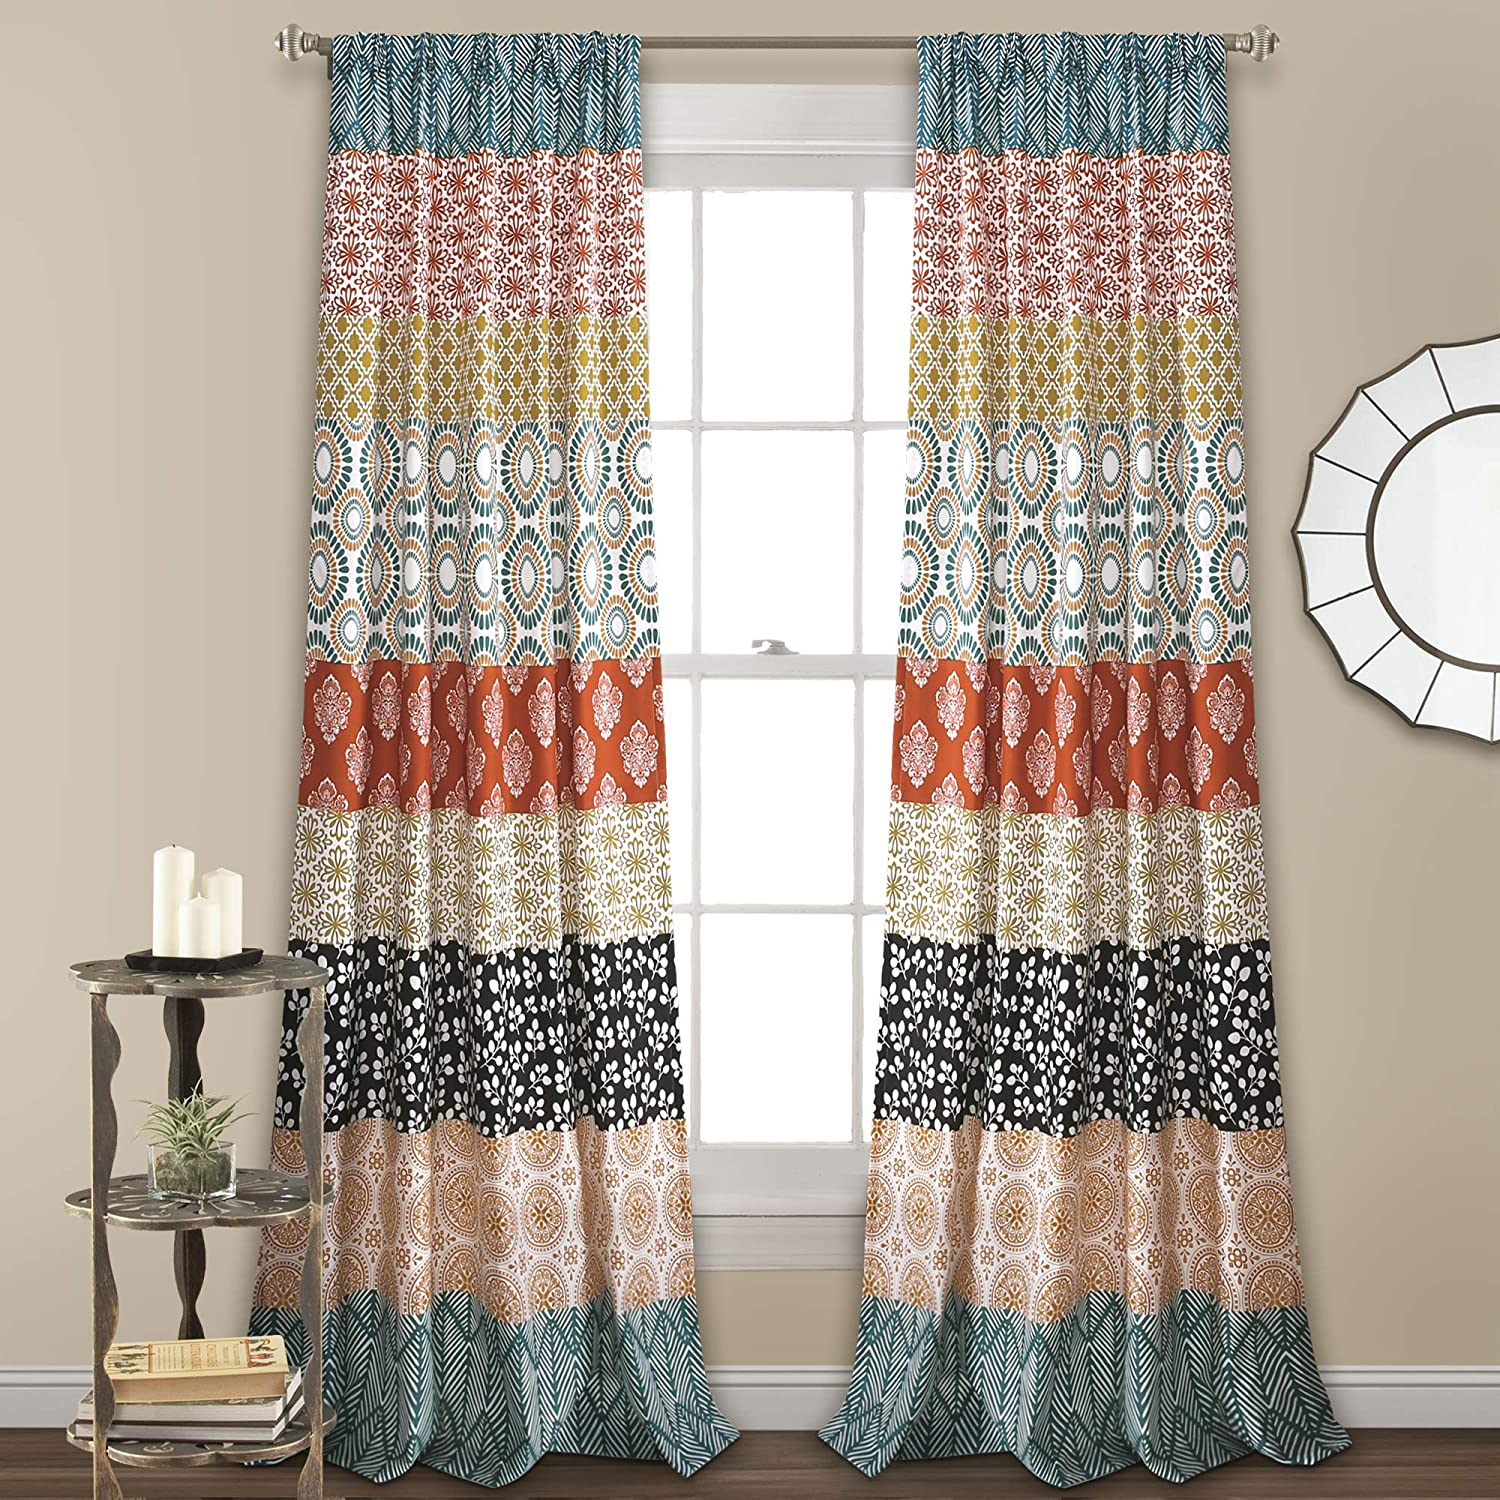 "Lush Decor Bohemian Stripe Window Curtain Colorful Bold Design Panel Pair, 84"" x 52"", Turquoise and Orange"